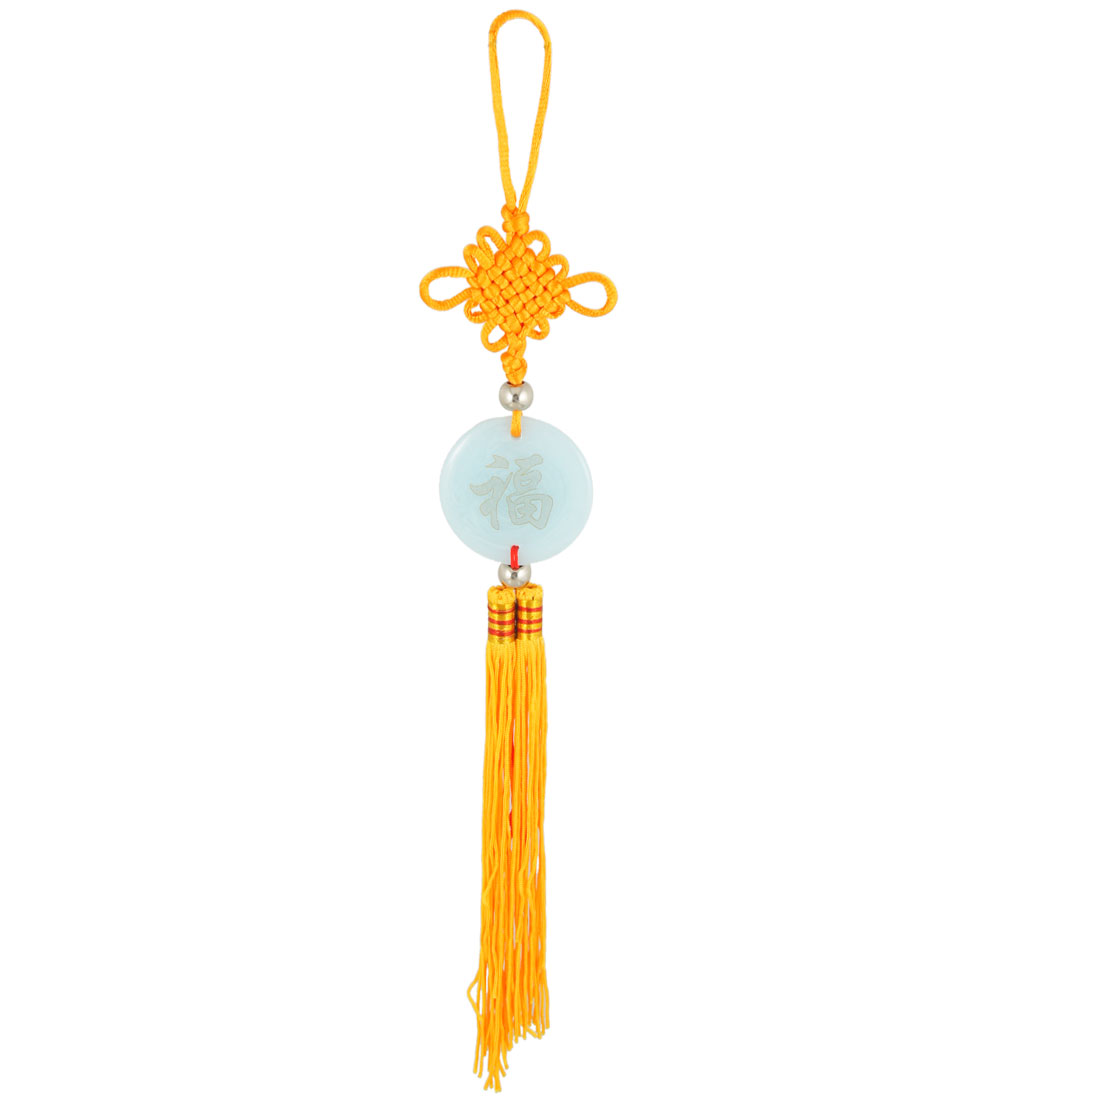 Yi Sheng Ping An Print Faux Jade Tassel Chinese Knot Vehicles Ornament Yellow